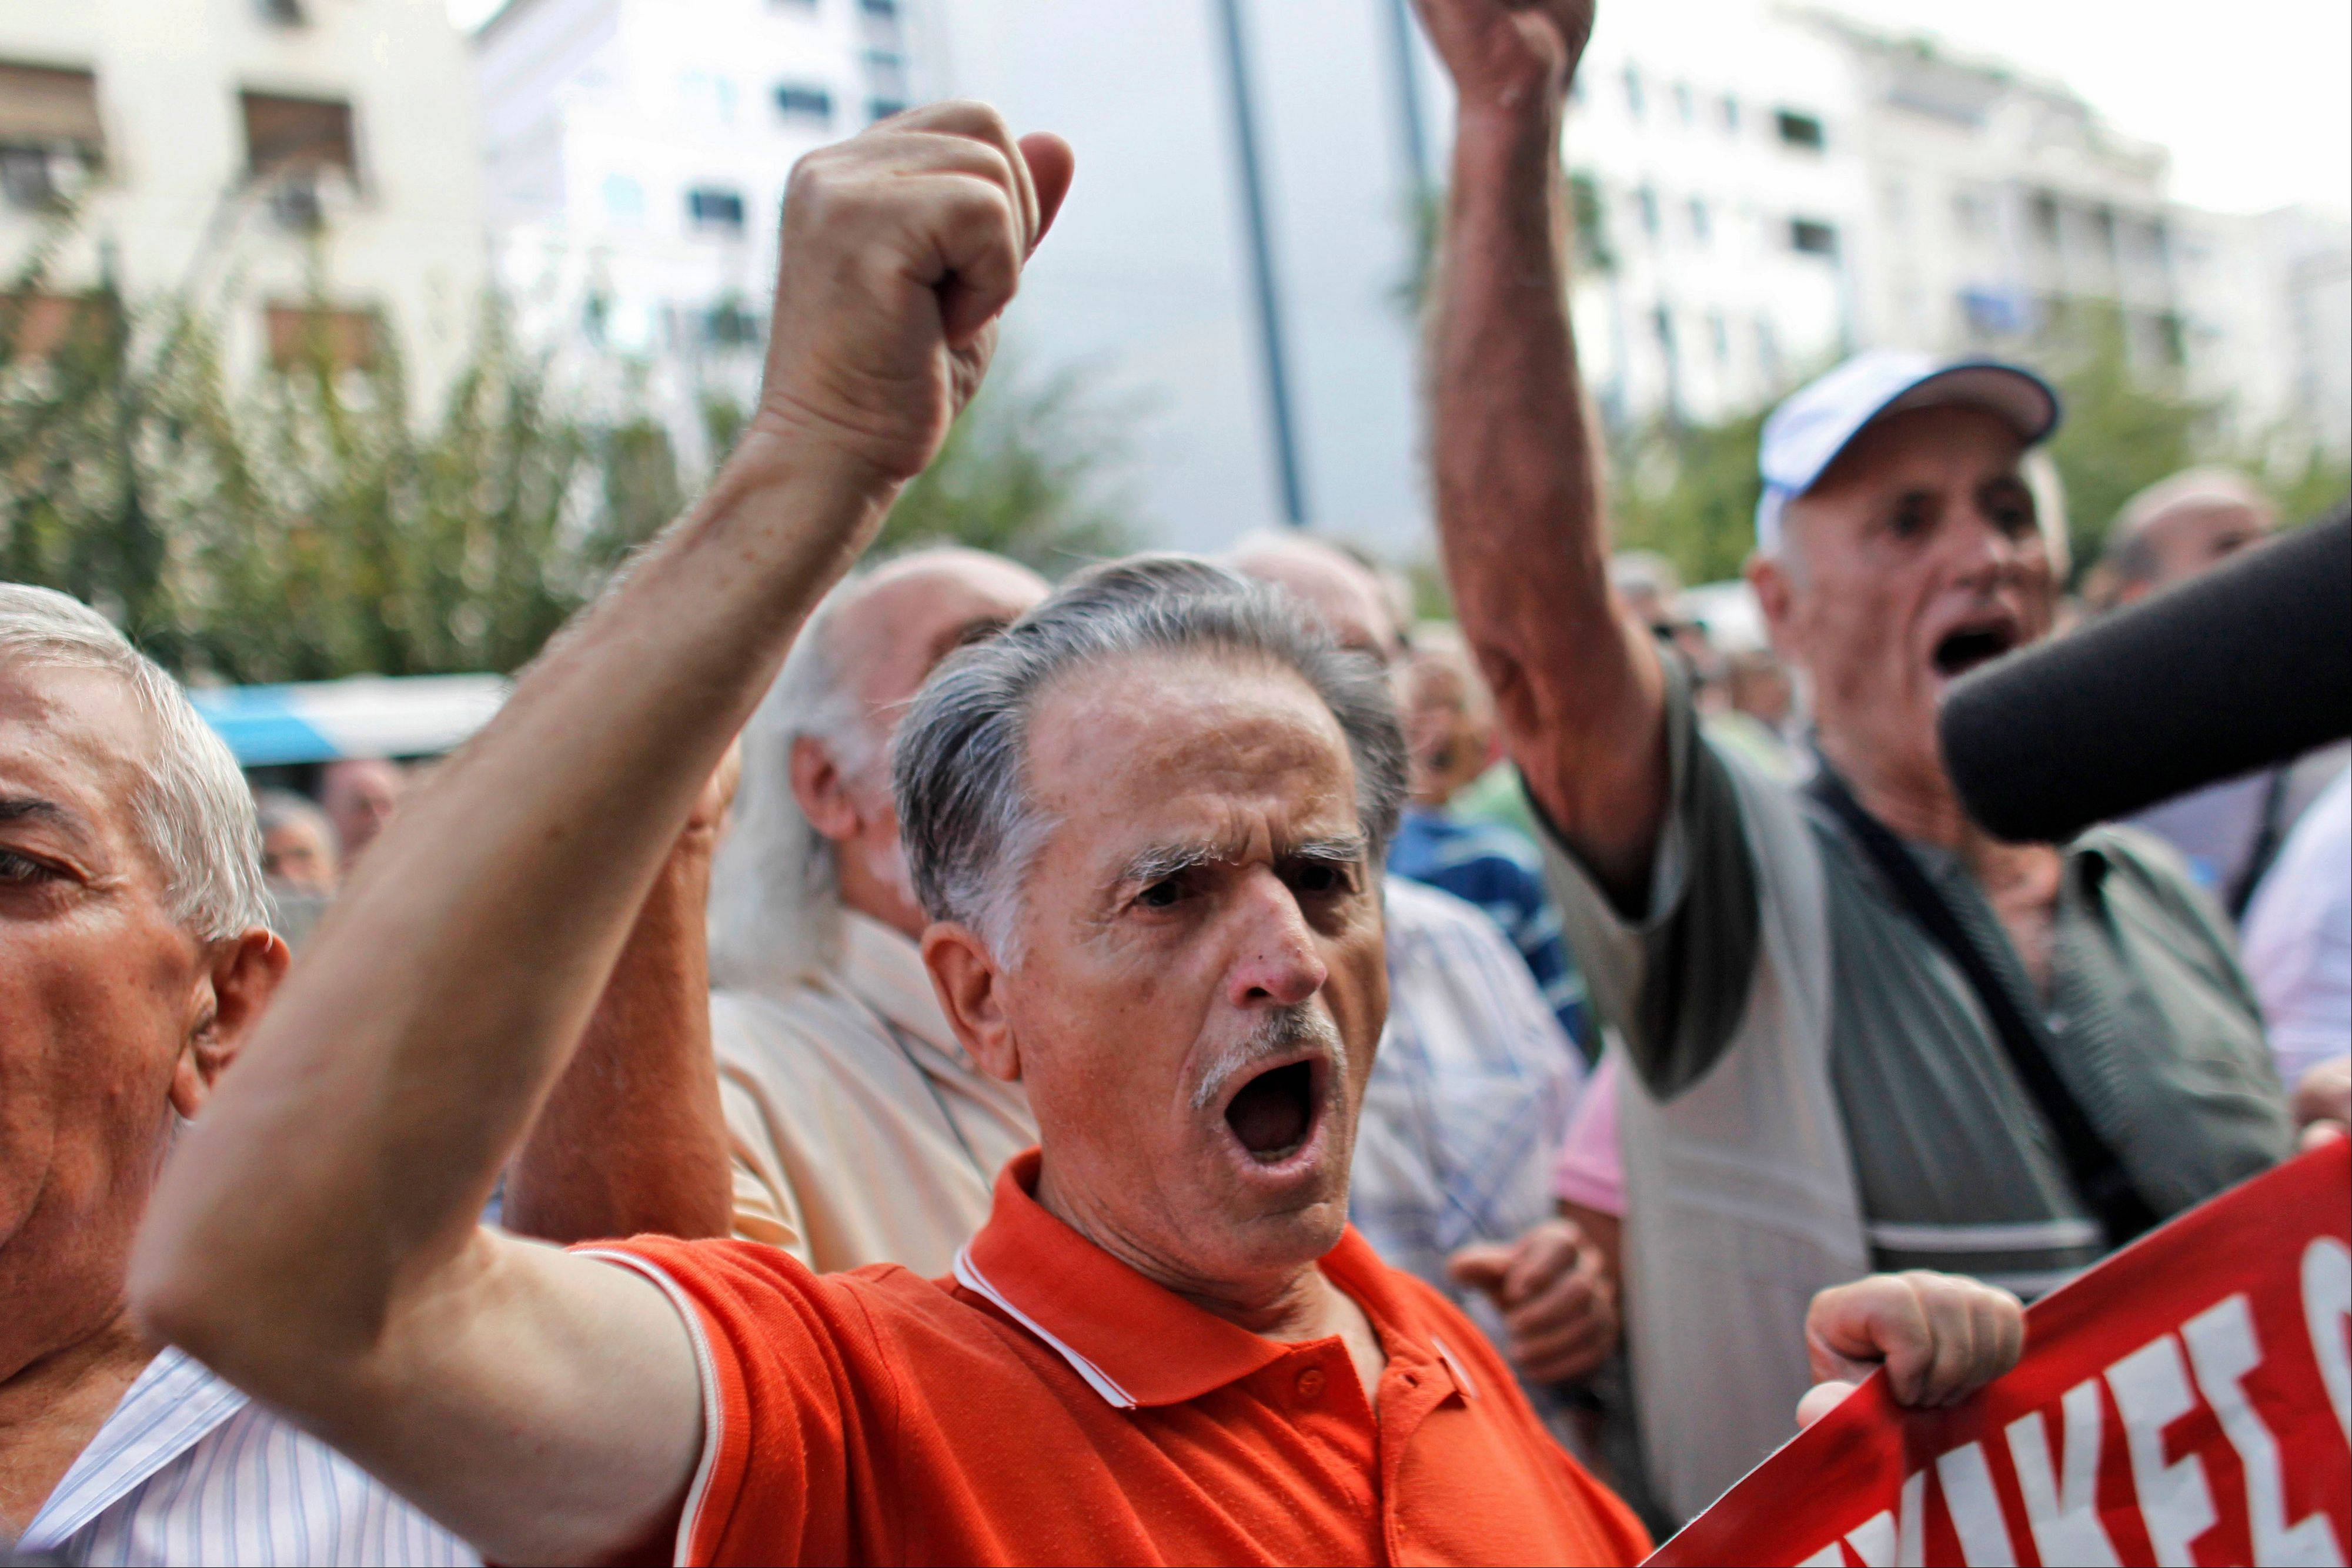 A pensioner shouts slogans during an anti-austerity protest in front of the EU headquarters in Athens on Monday. Greek police have increased security and are preparing to close down large sections of the capital Athens to contain protests against Germany's Chancellor, Angela Merkel, who is visiting the city Tuesday.